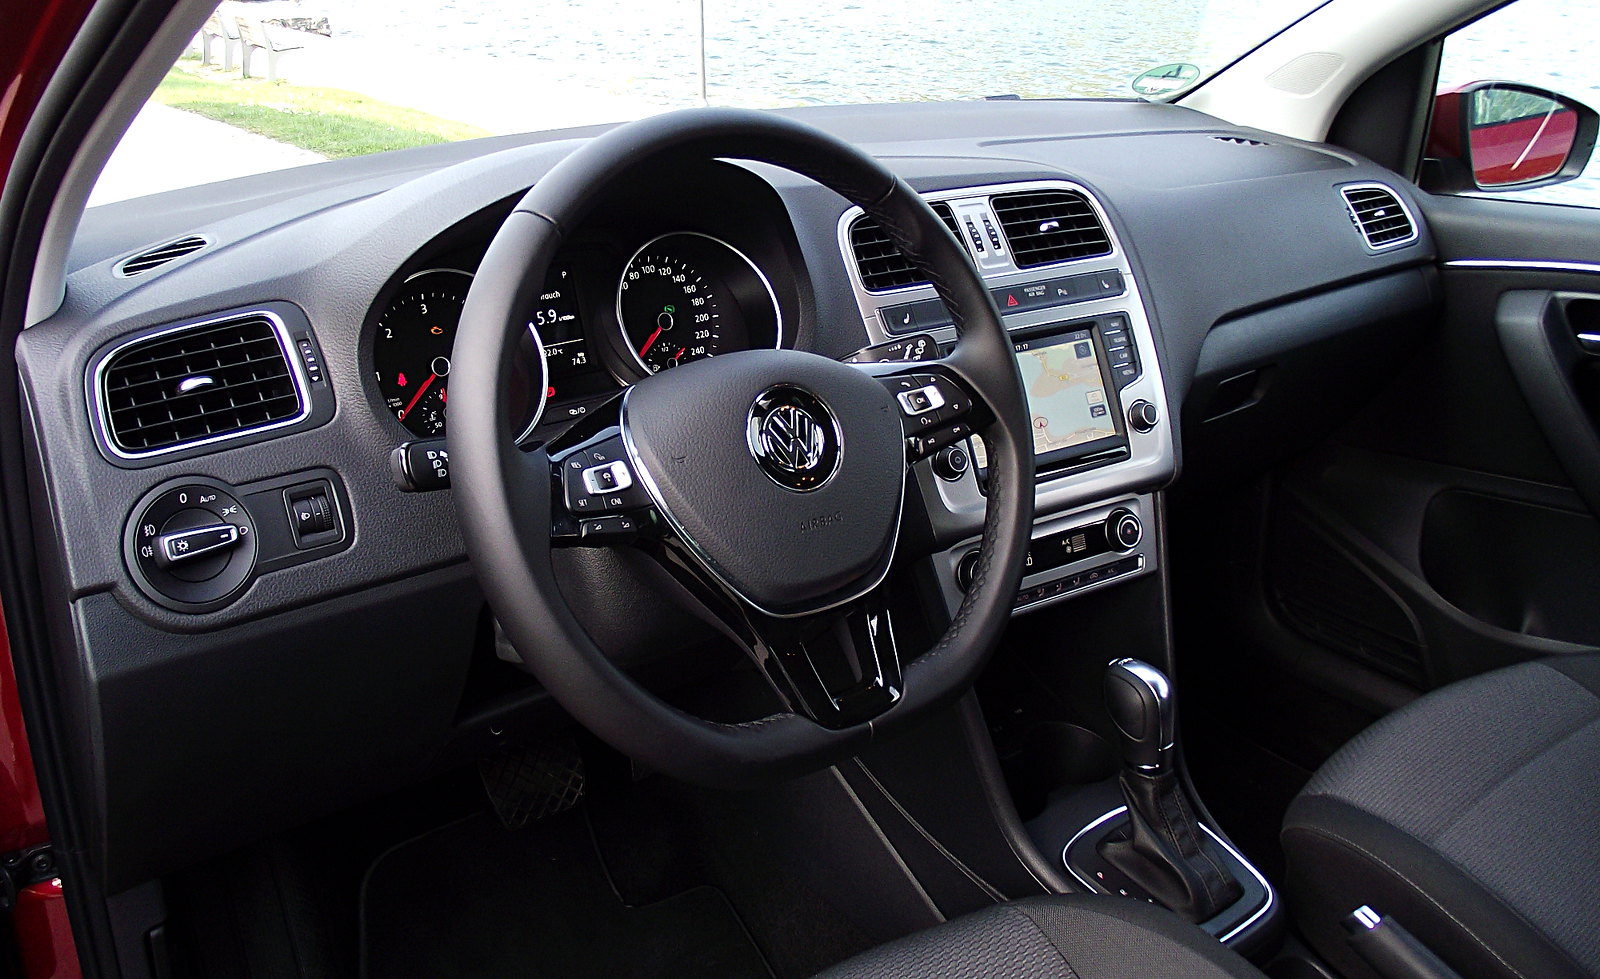 vw polo v 1 4 tdi 66 kw 90 ps dsg highline typ 6r 2014 cockpit interieur innenraum flickr. Black Bedroom Furniture Sets. Home Design Ideas